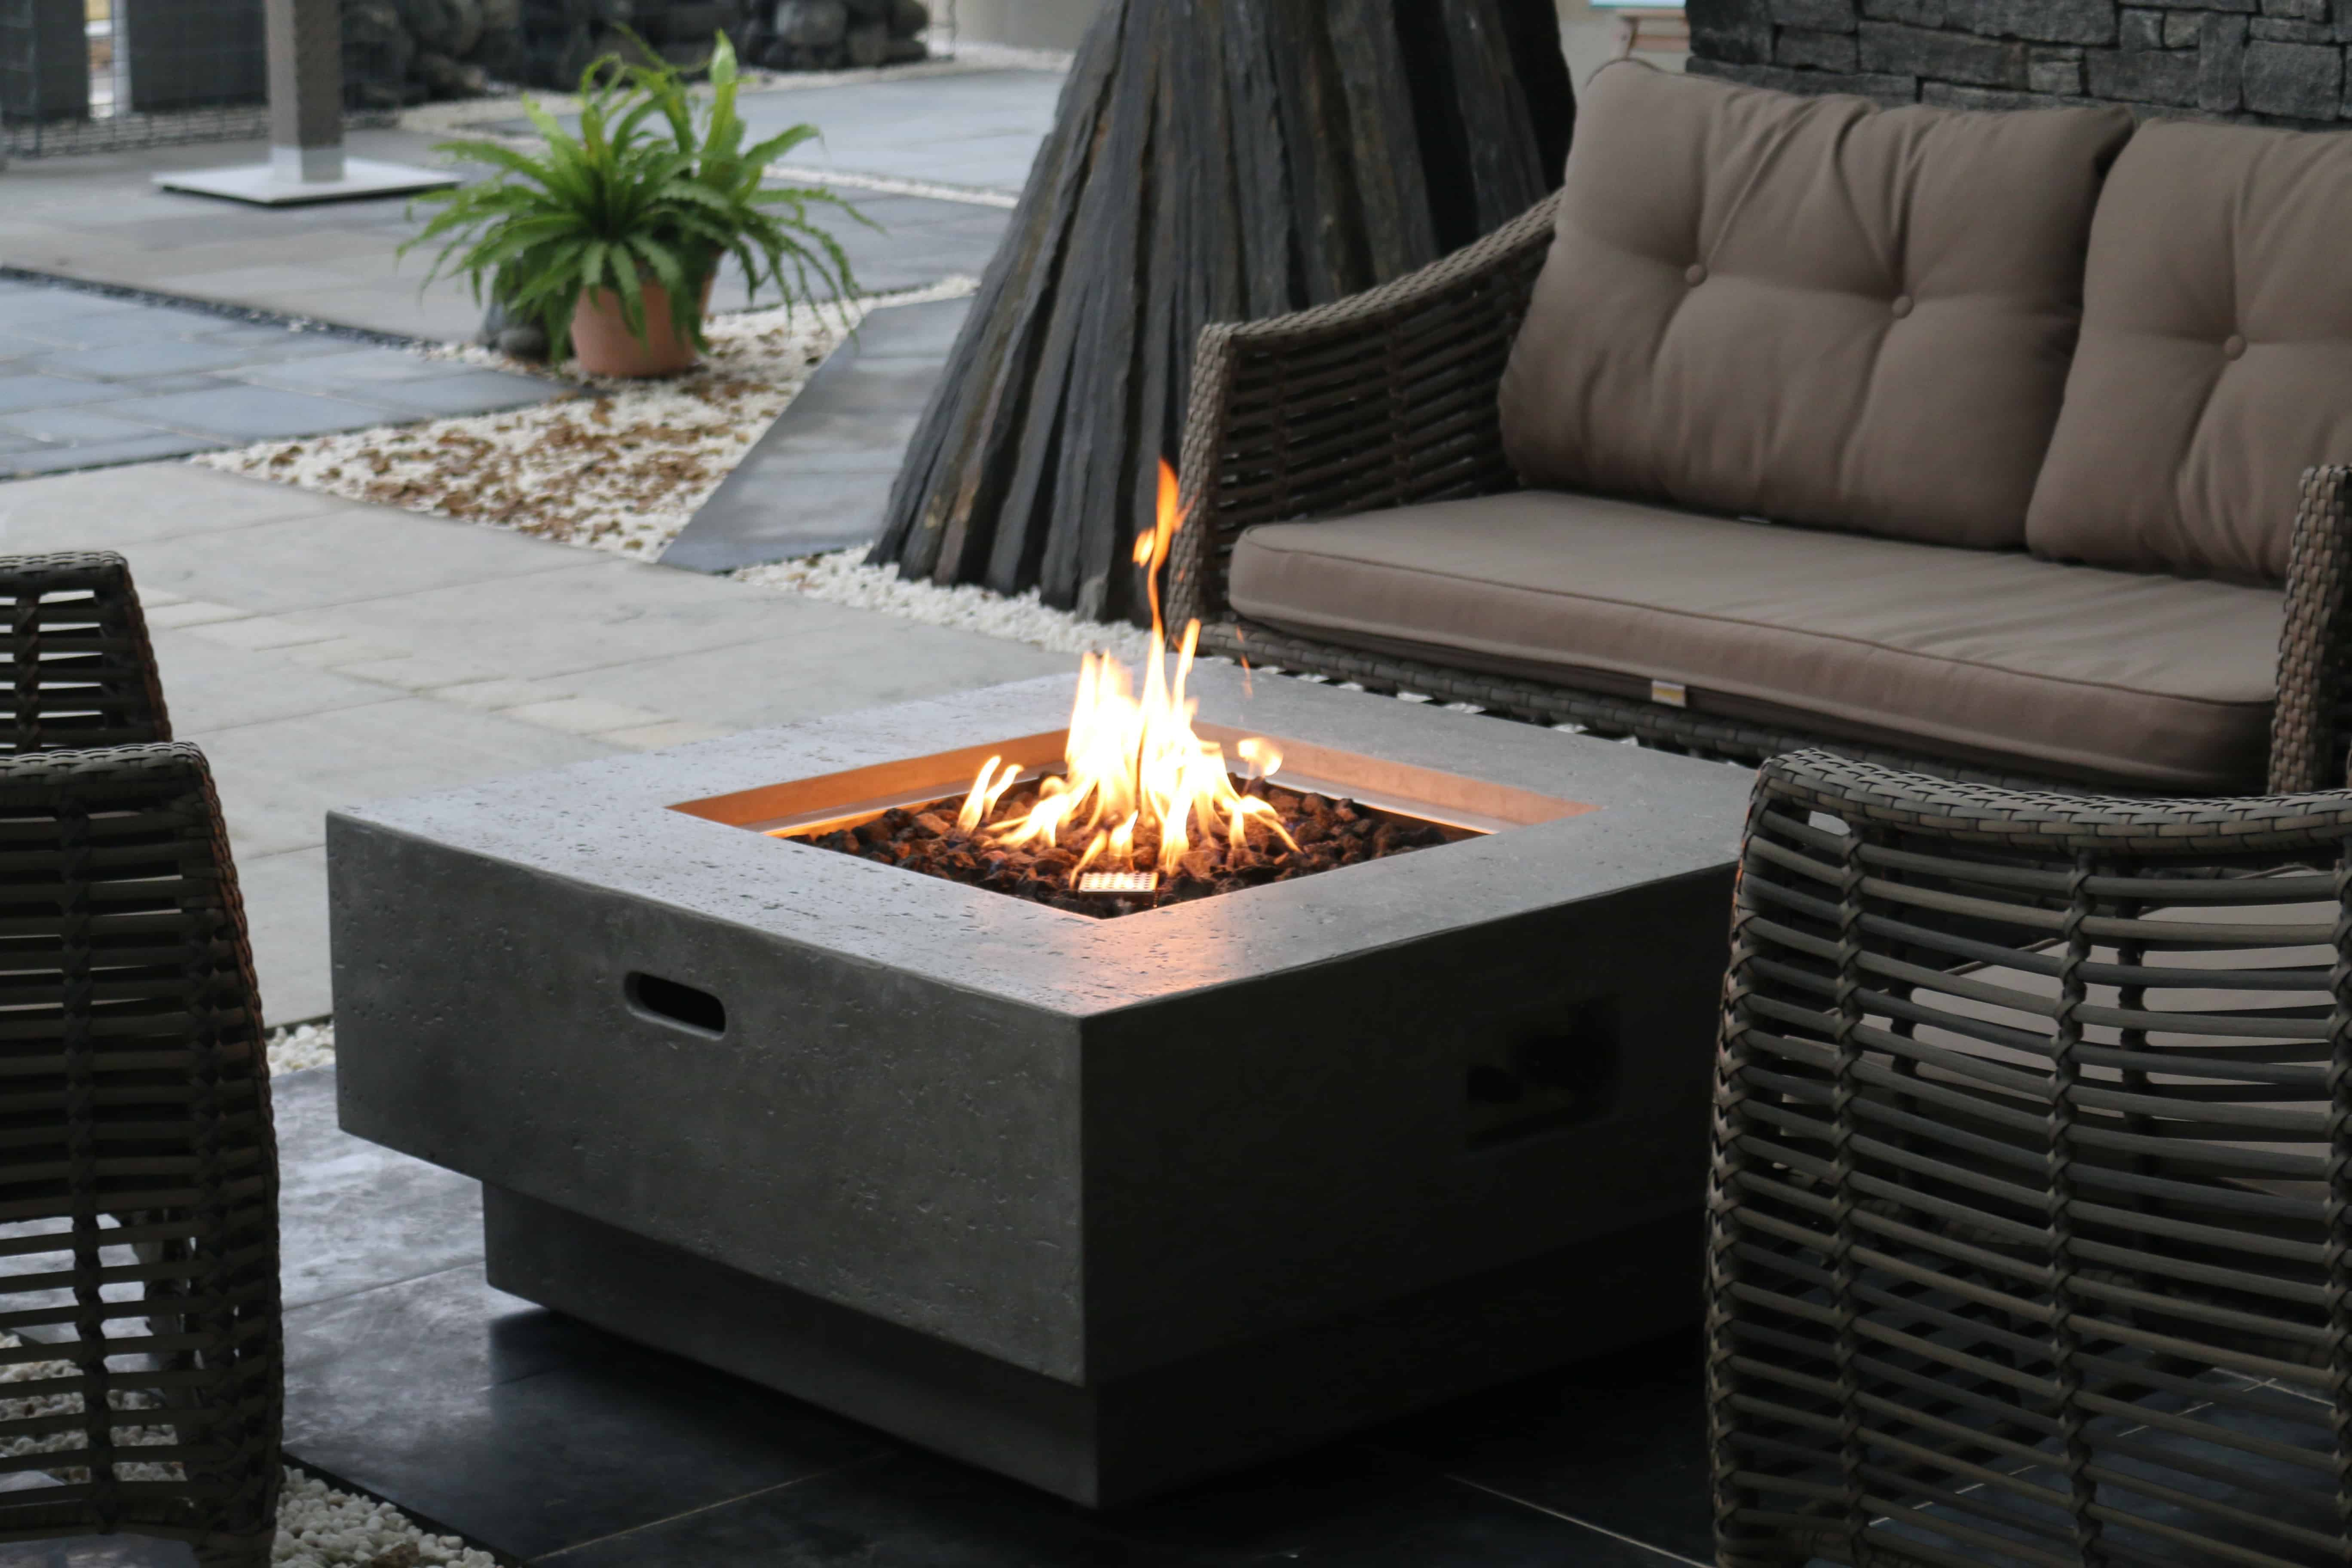 New York Outdoor Gas Fire Pit Outdoor Gas Fires Outdoor Heating Garden Furniture Barbecues Outdoor Ie